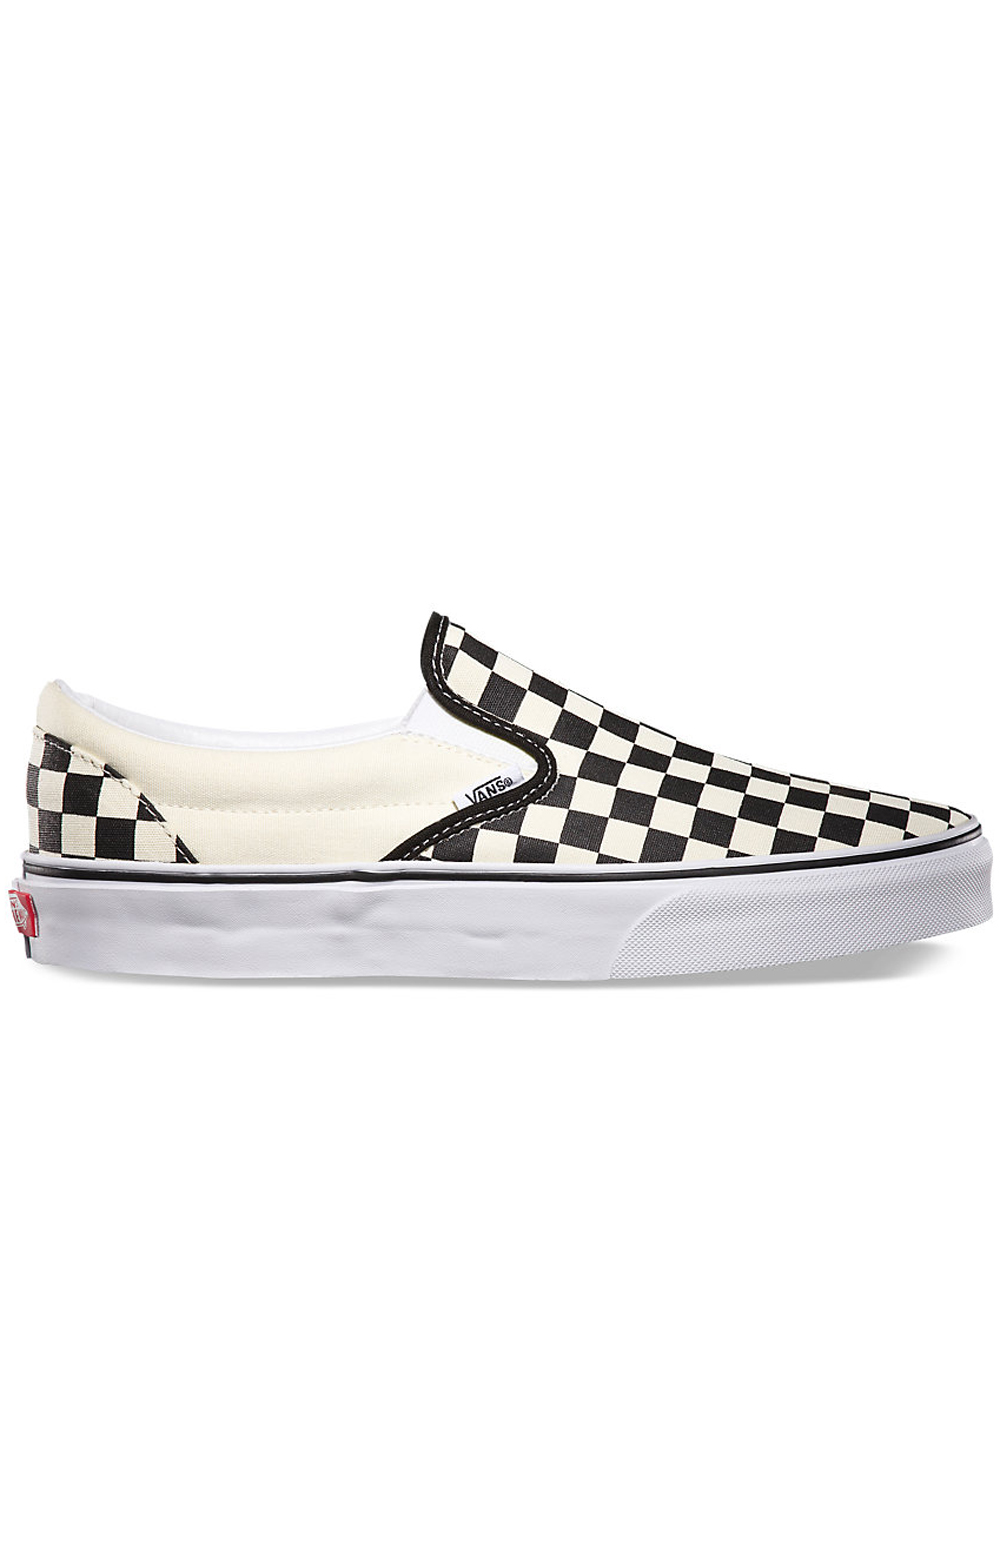 (EYEBWW) Checkerboard Slip-On Shoe - Black/Off White